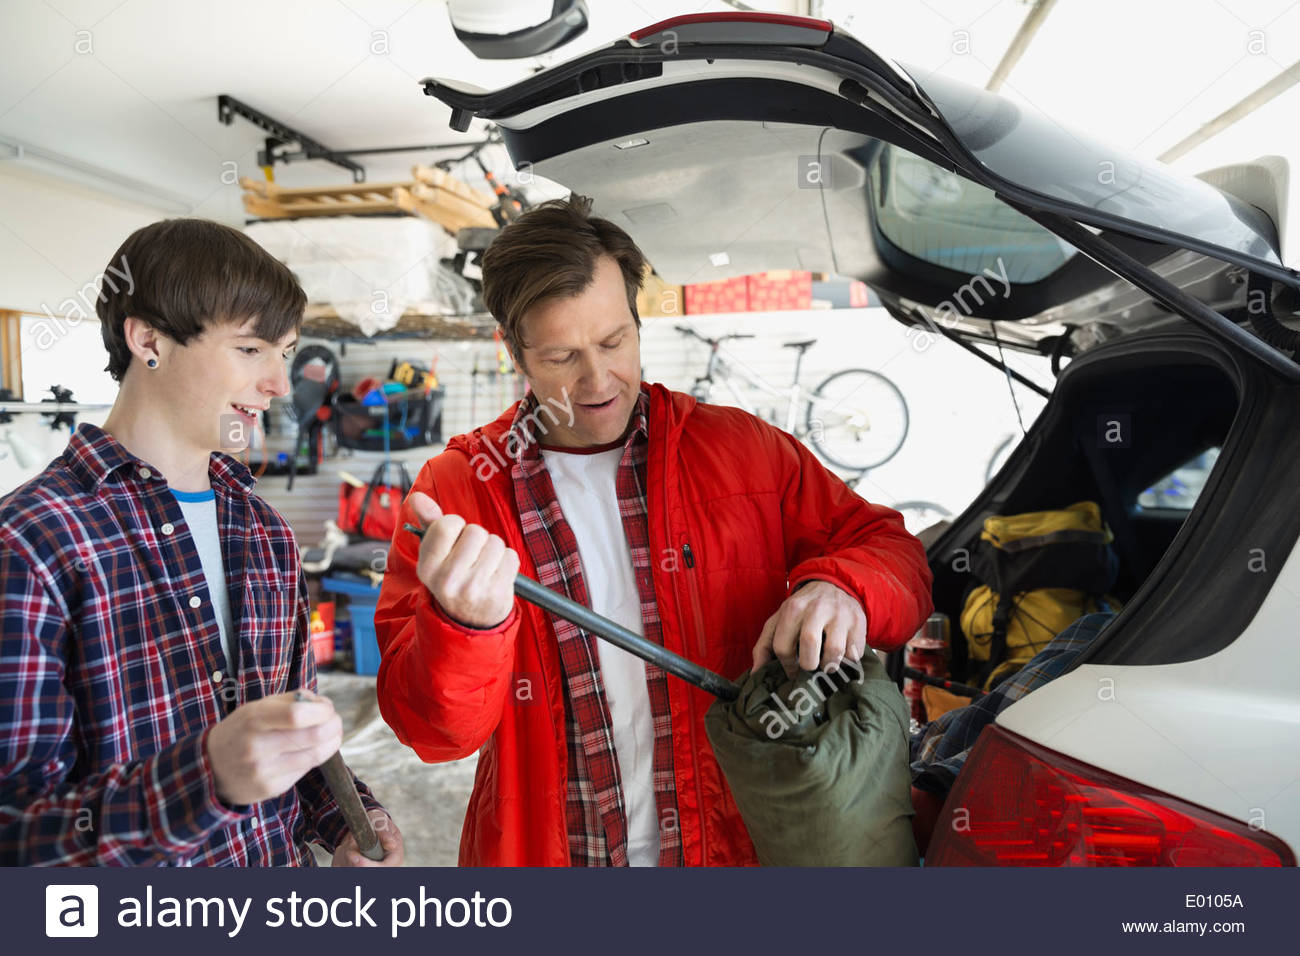 Father and son loading camping gear into car - Stock Image